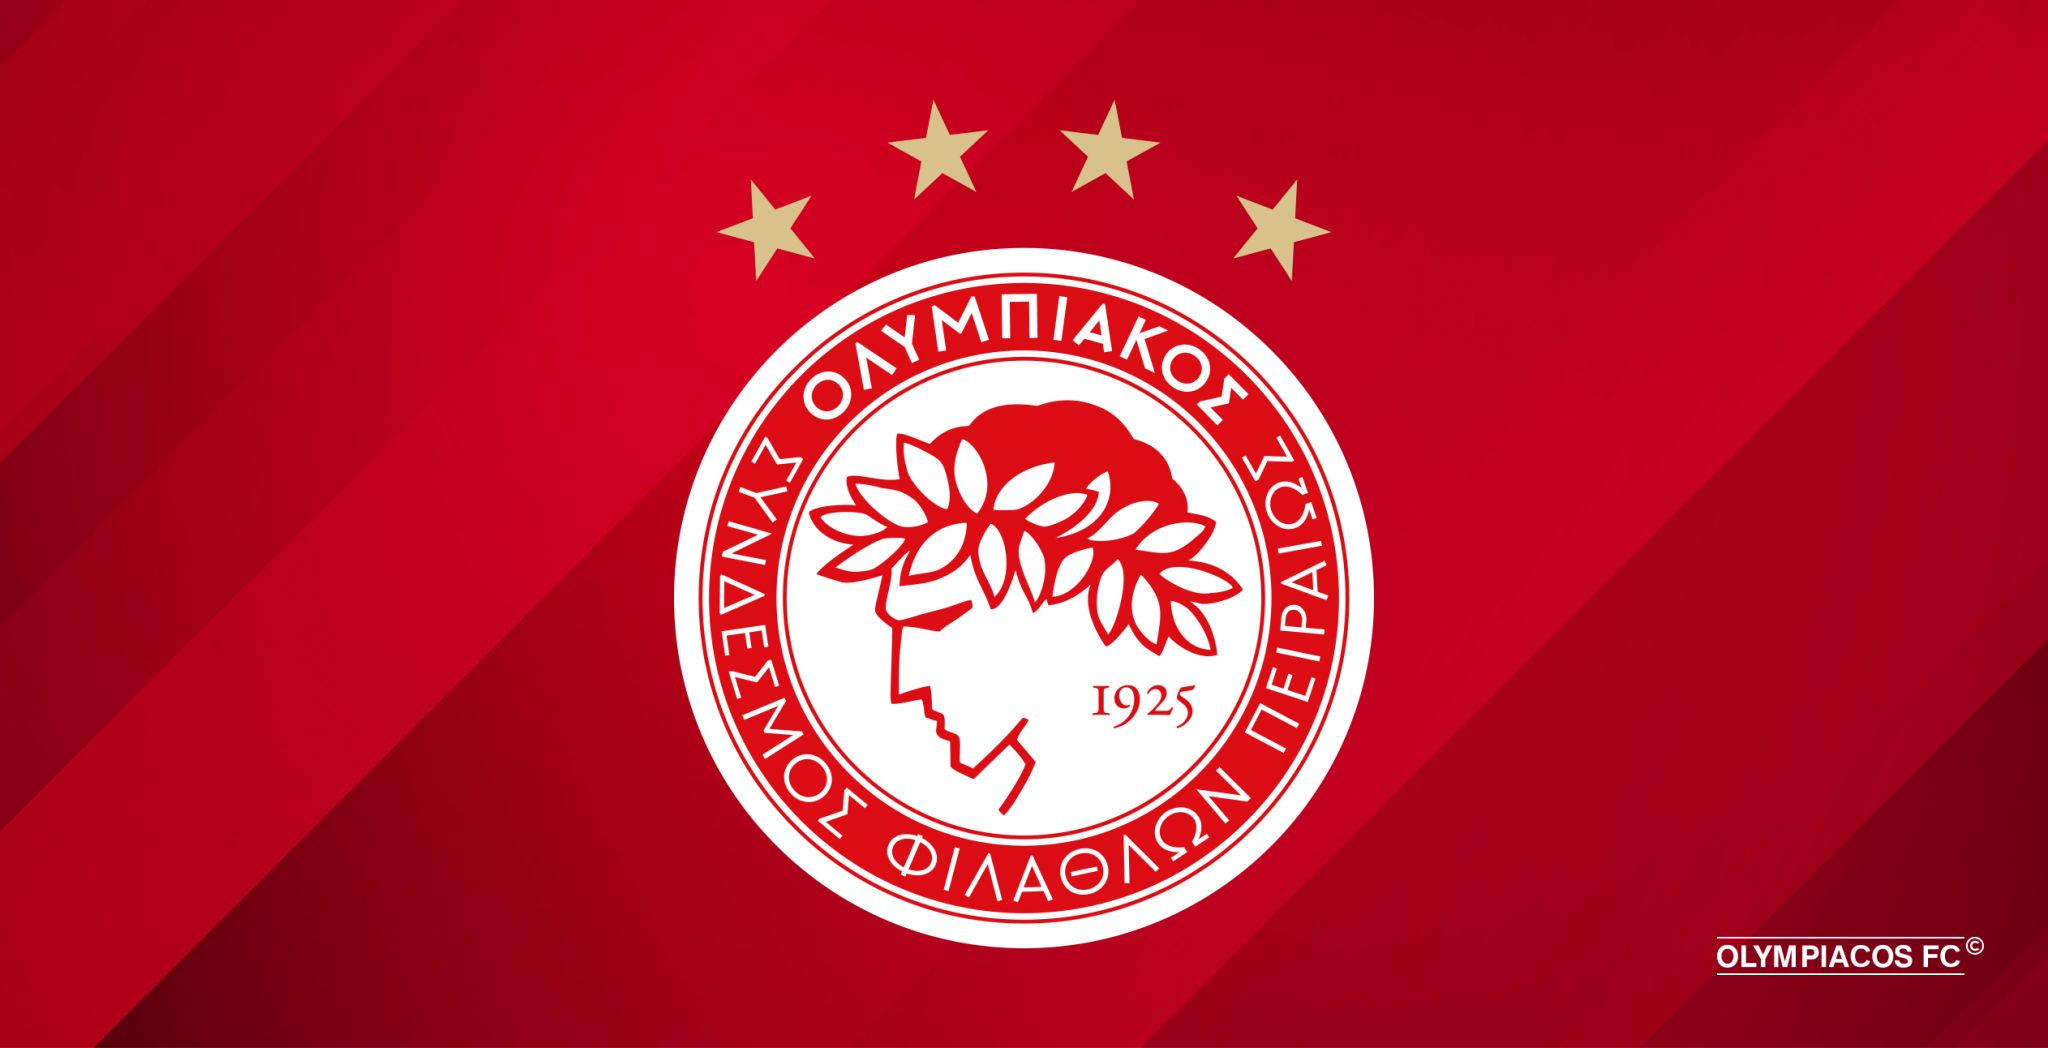 Announcement of Olympiacos FC